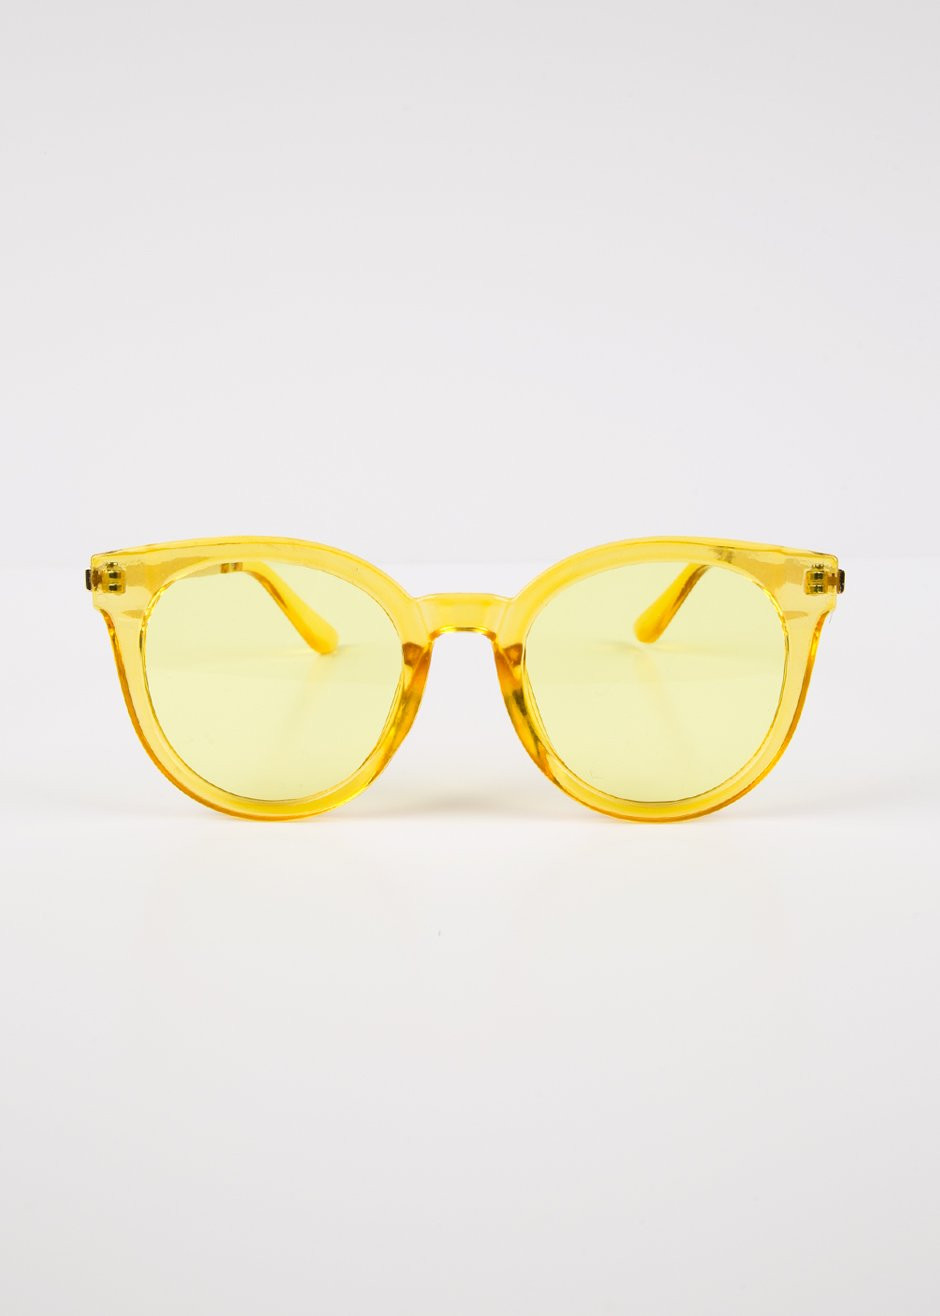 Frankie Shop Yellow Sunglasses $20